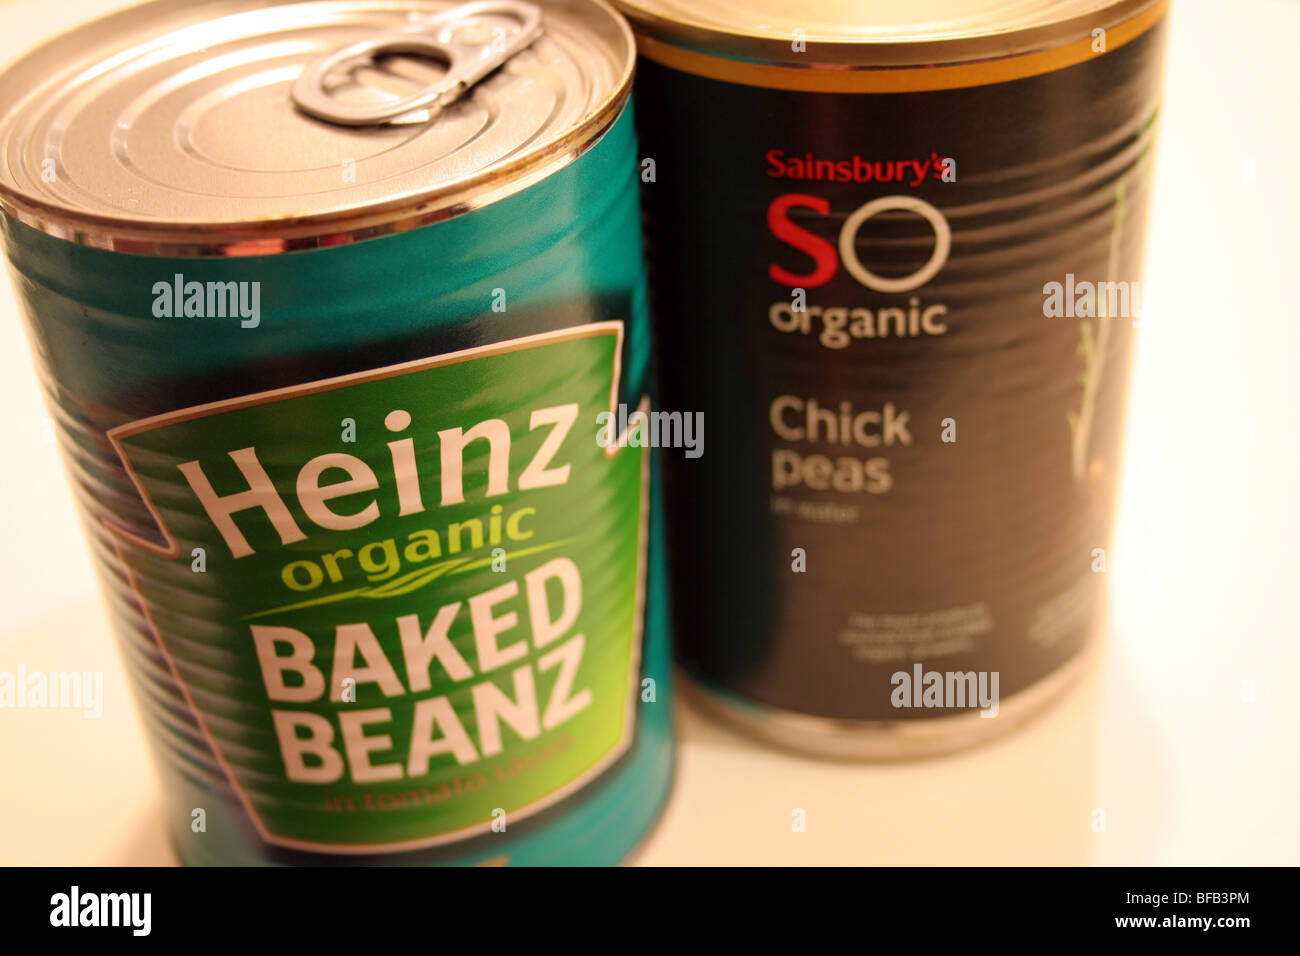 Organic tinned food - baked beans and chick peas - Stock Image